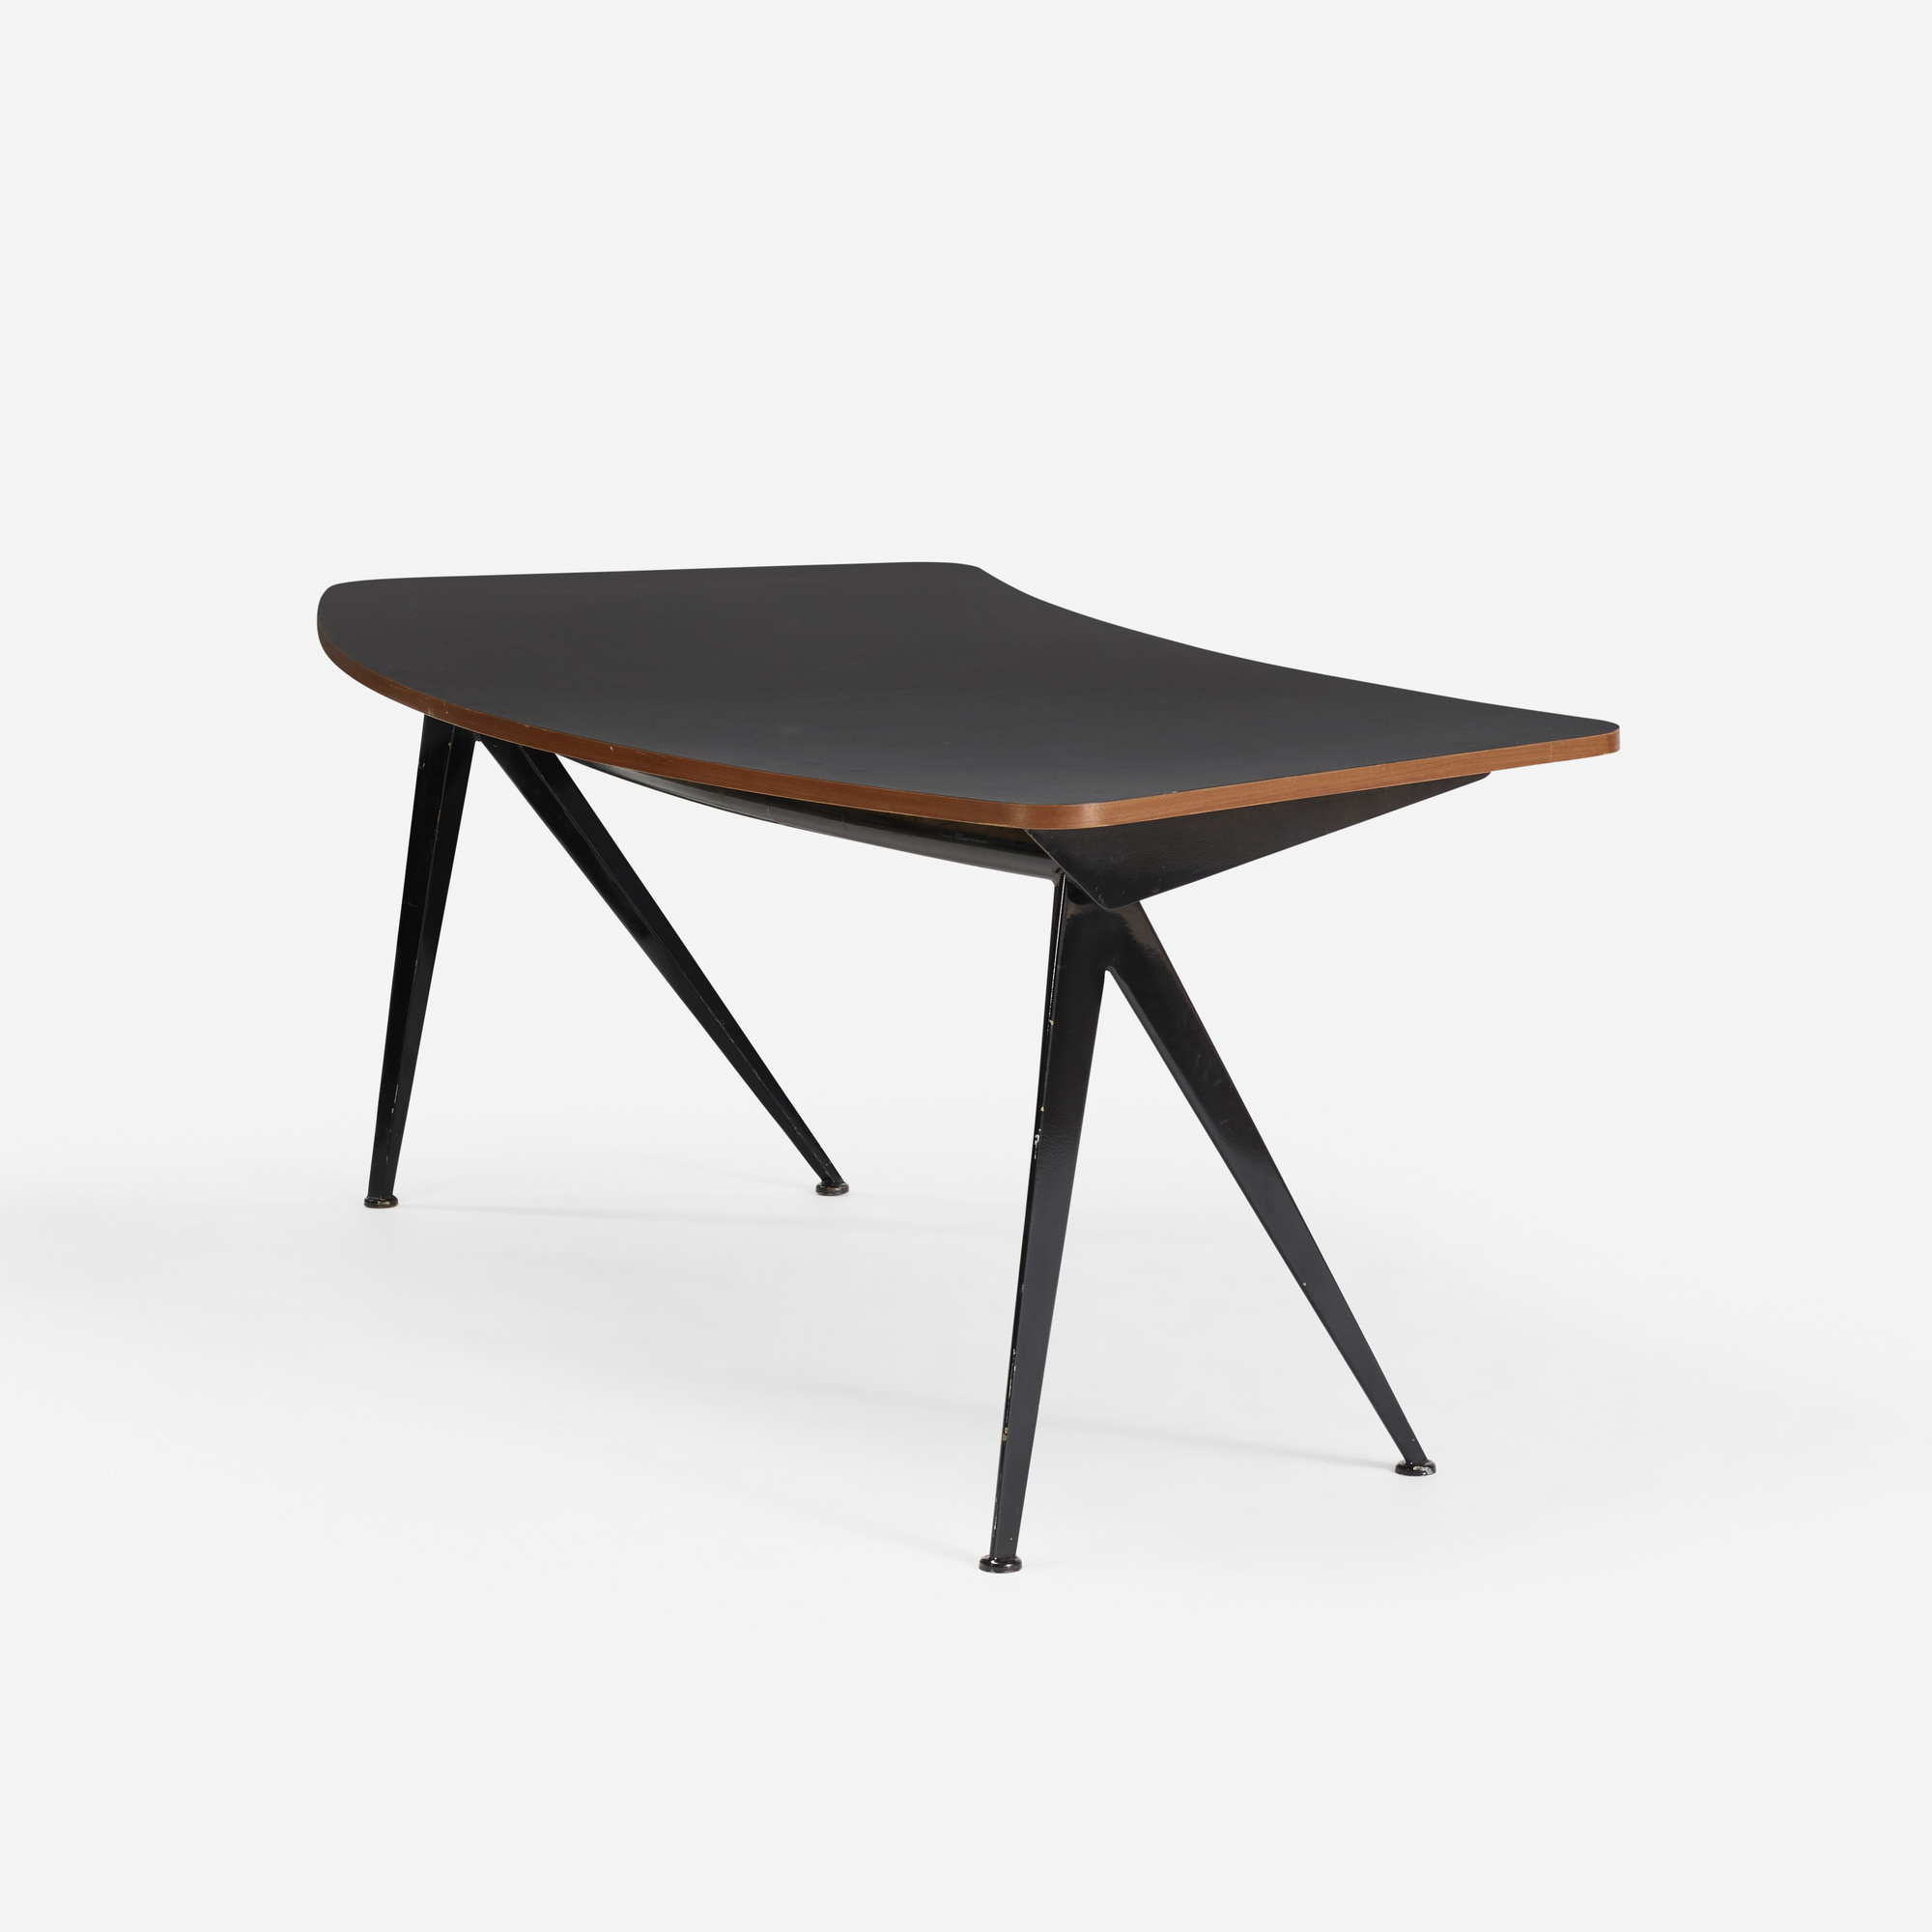 Fabuleux 175: Jean Prouvé / Curved Compas table < Design, 24 March 2016  NU22